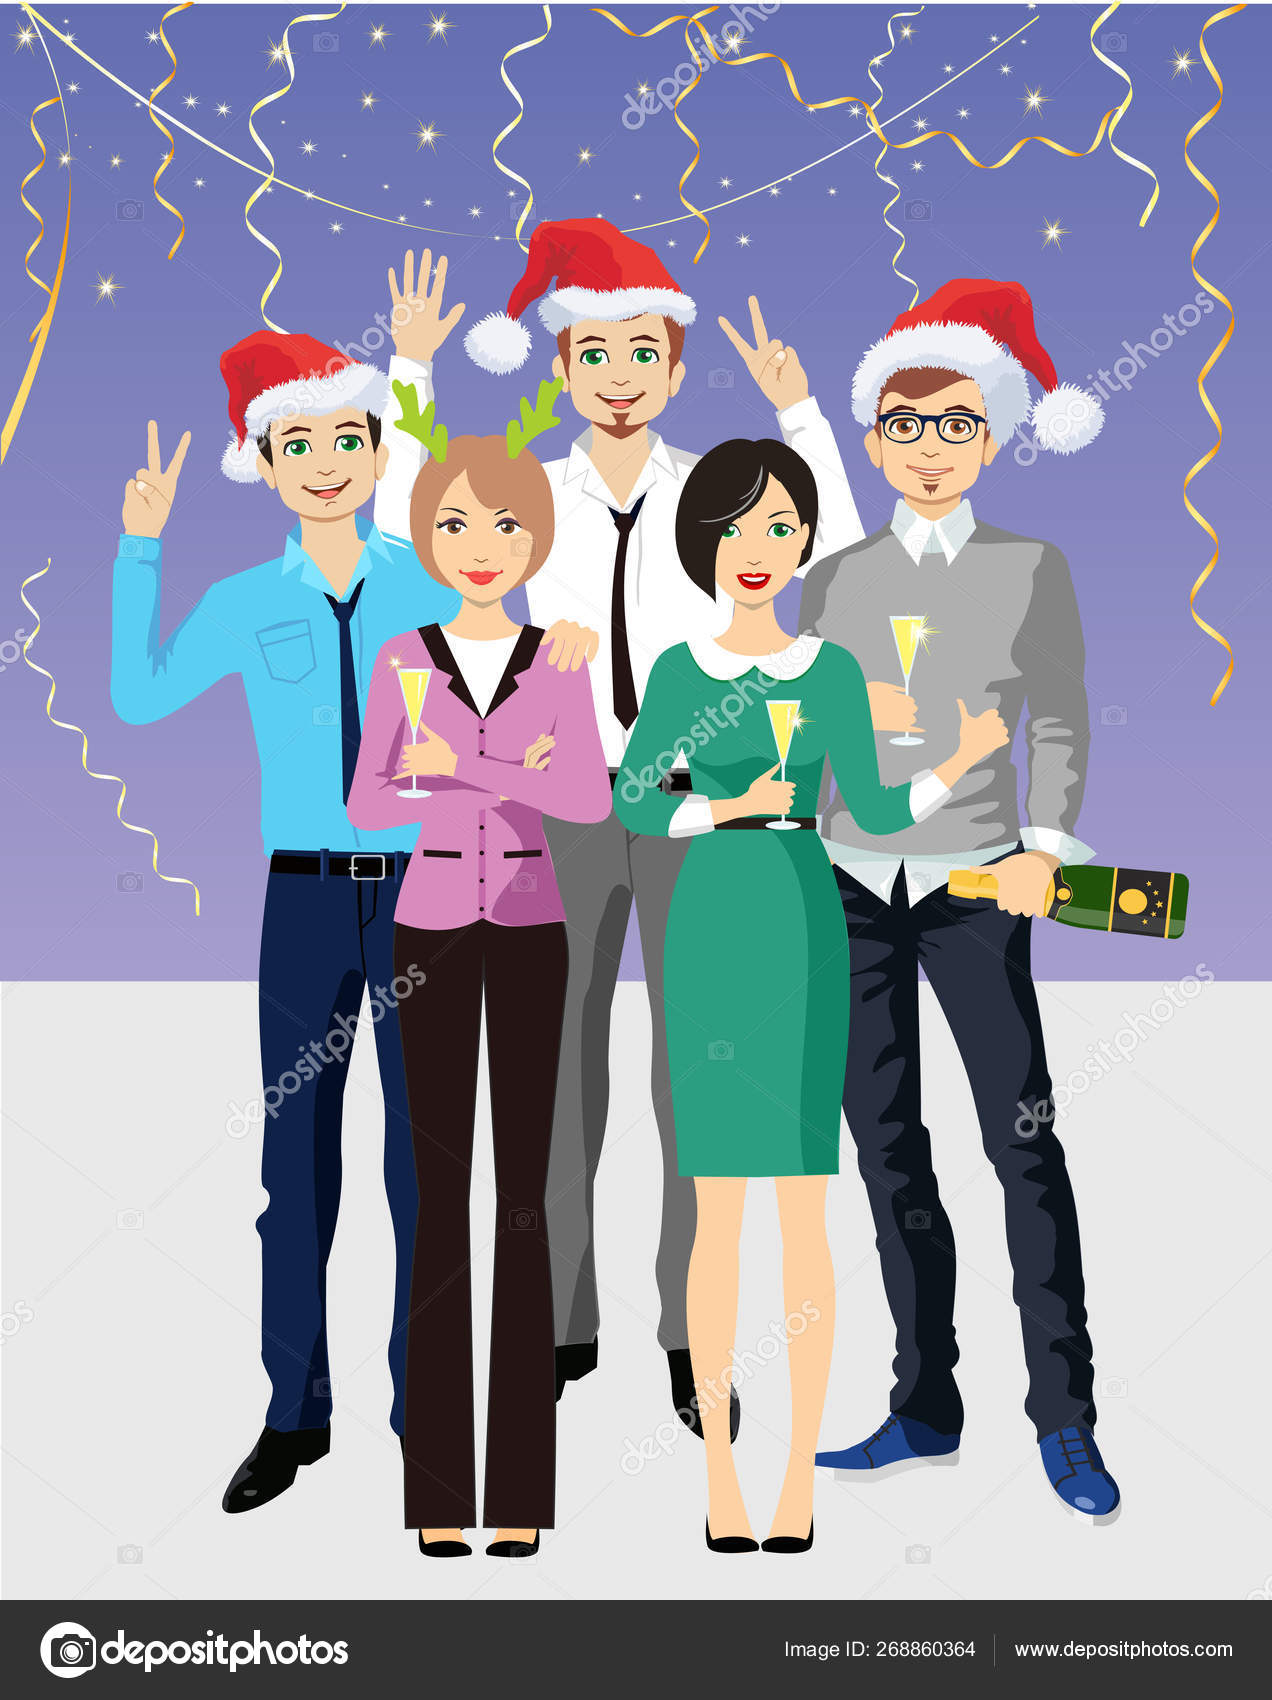 Office Christmas Party Cartoon Images : office, christmas, party, cartoon, images, Office, Party, Business, People, Christmas, Corporate, Vector, Image, Luisvv, Stock, 268860364